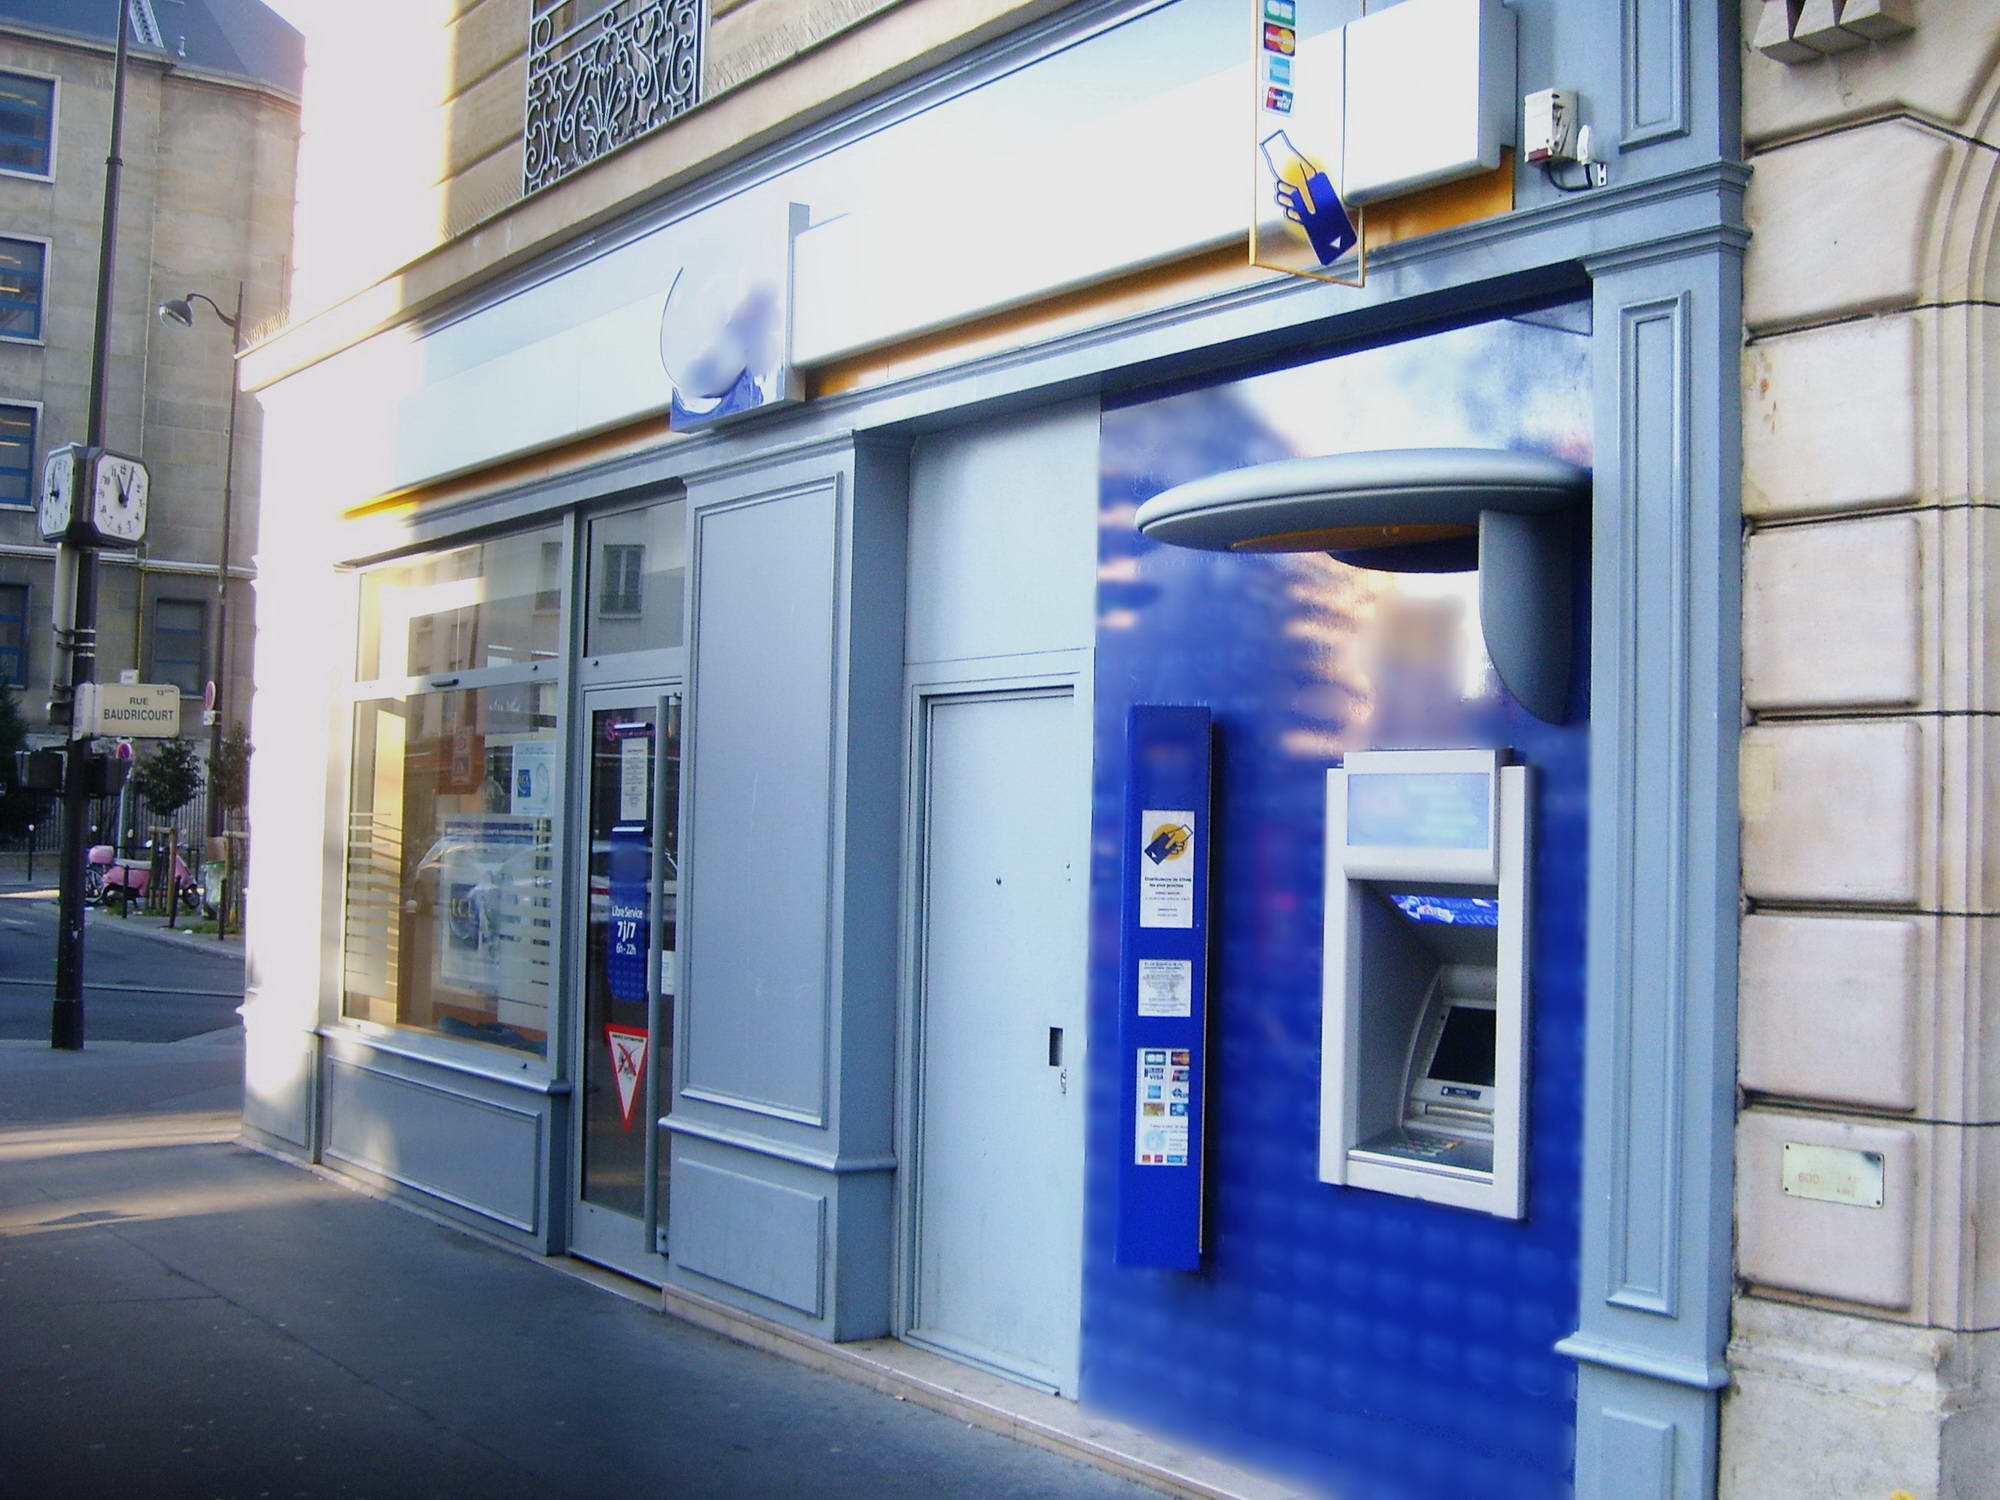 Agence Bancaire, Relation Banquier France, Expatriation